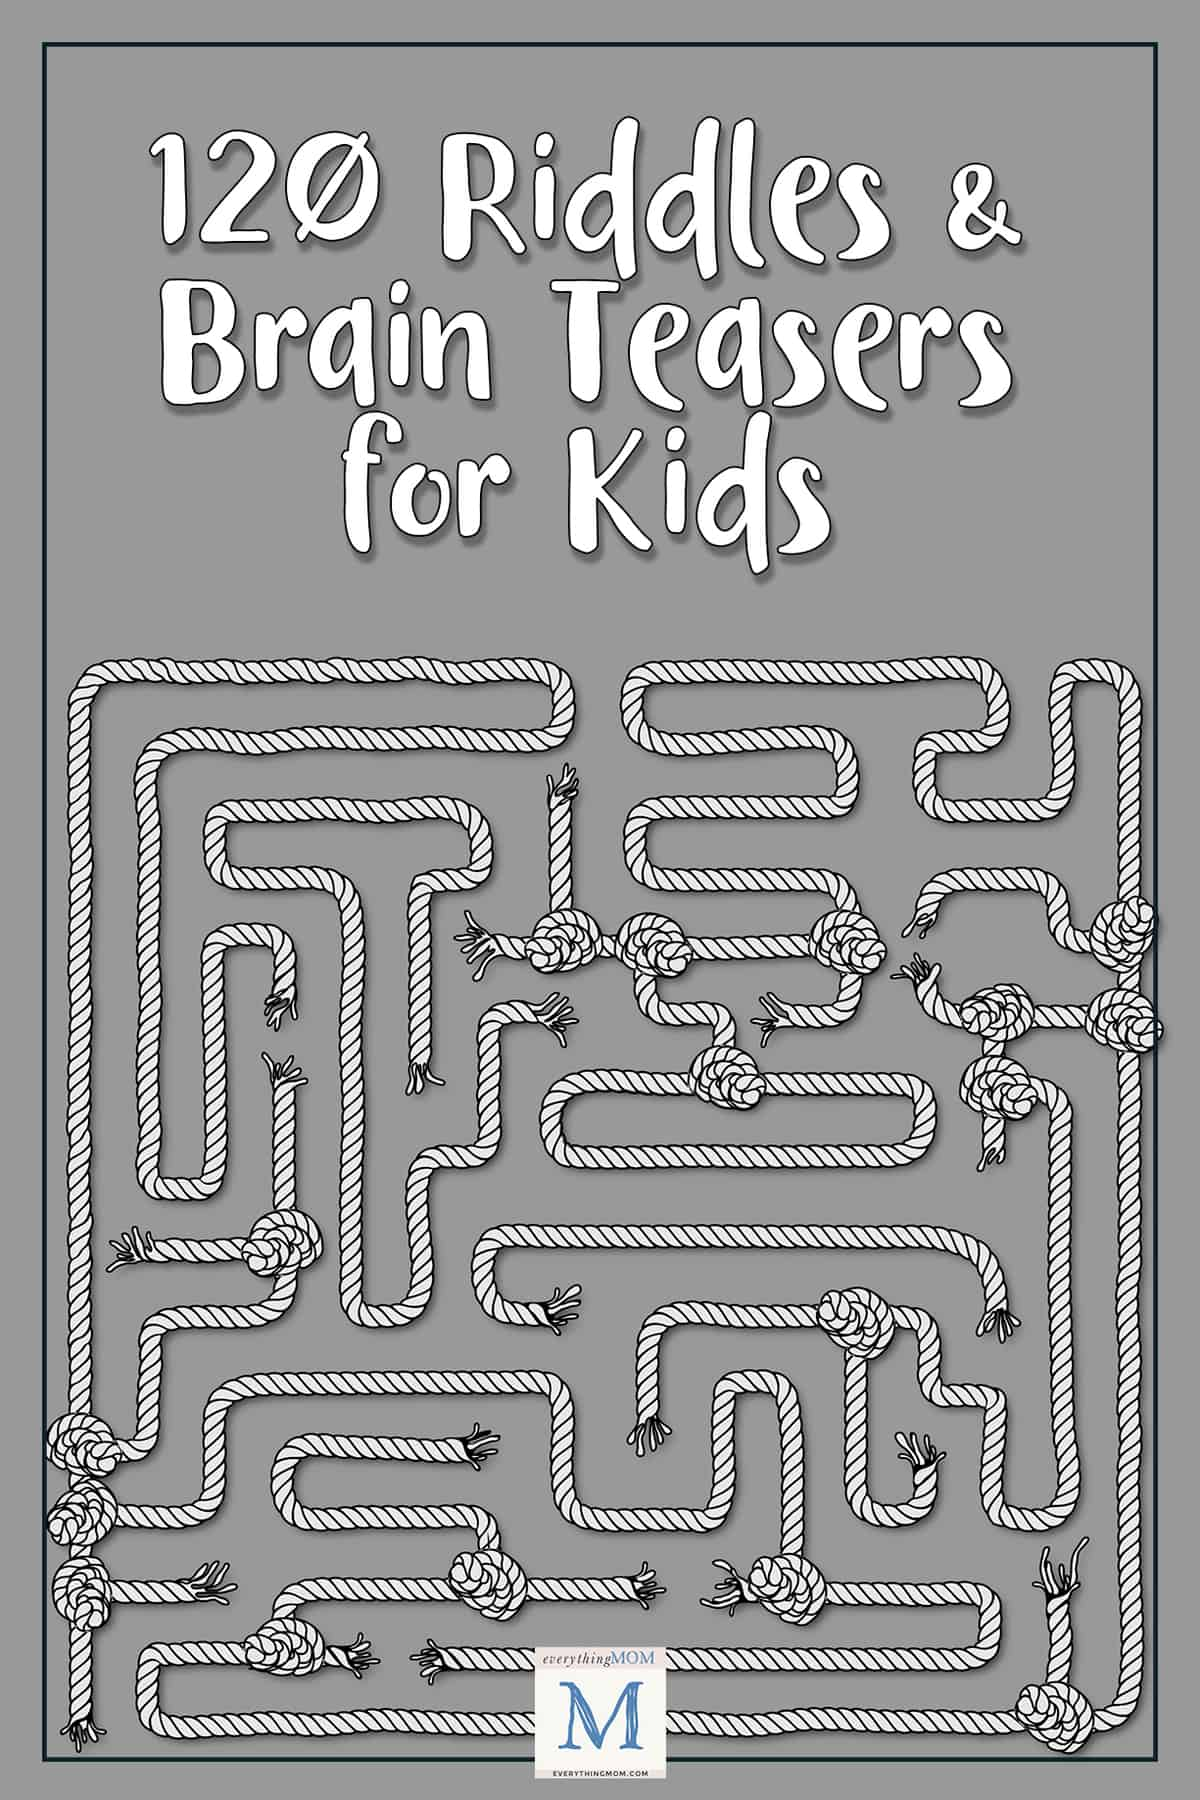 120 Riddles And Brain Teasers For Kids Top List On Web